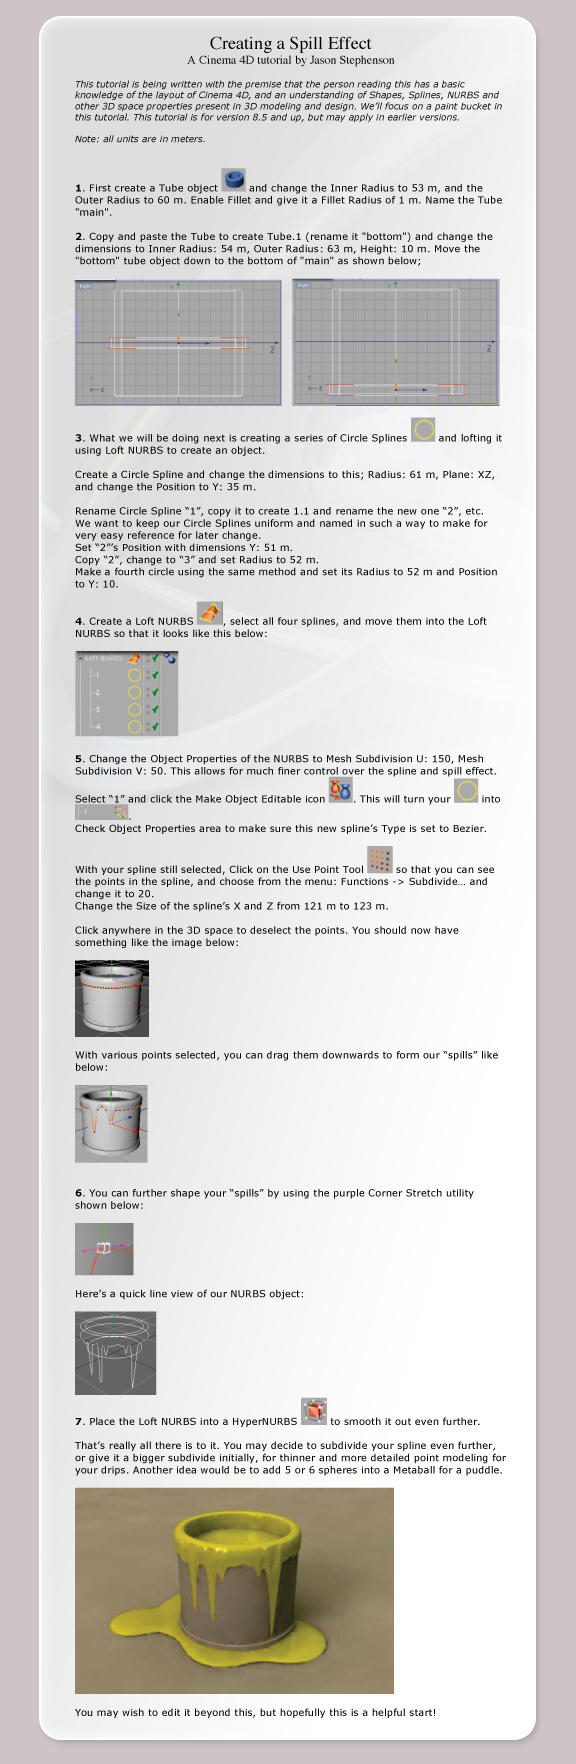 Spill Effect Tutorial by chromosphere